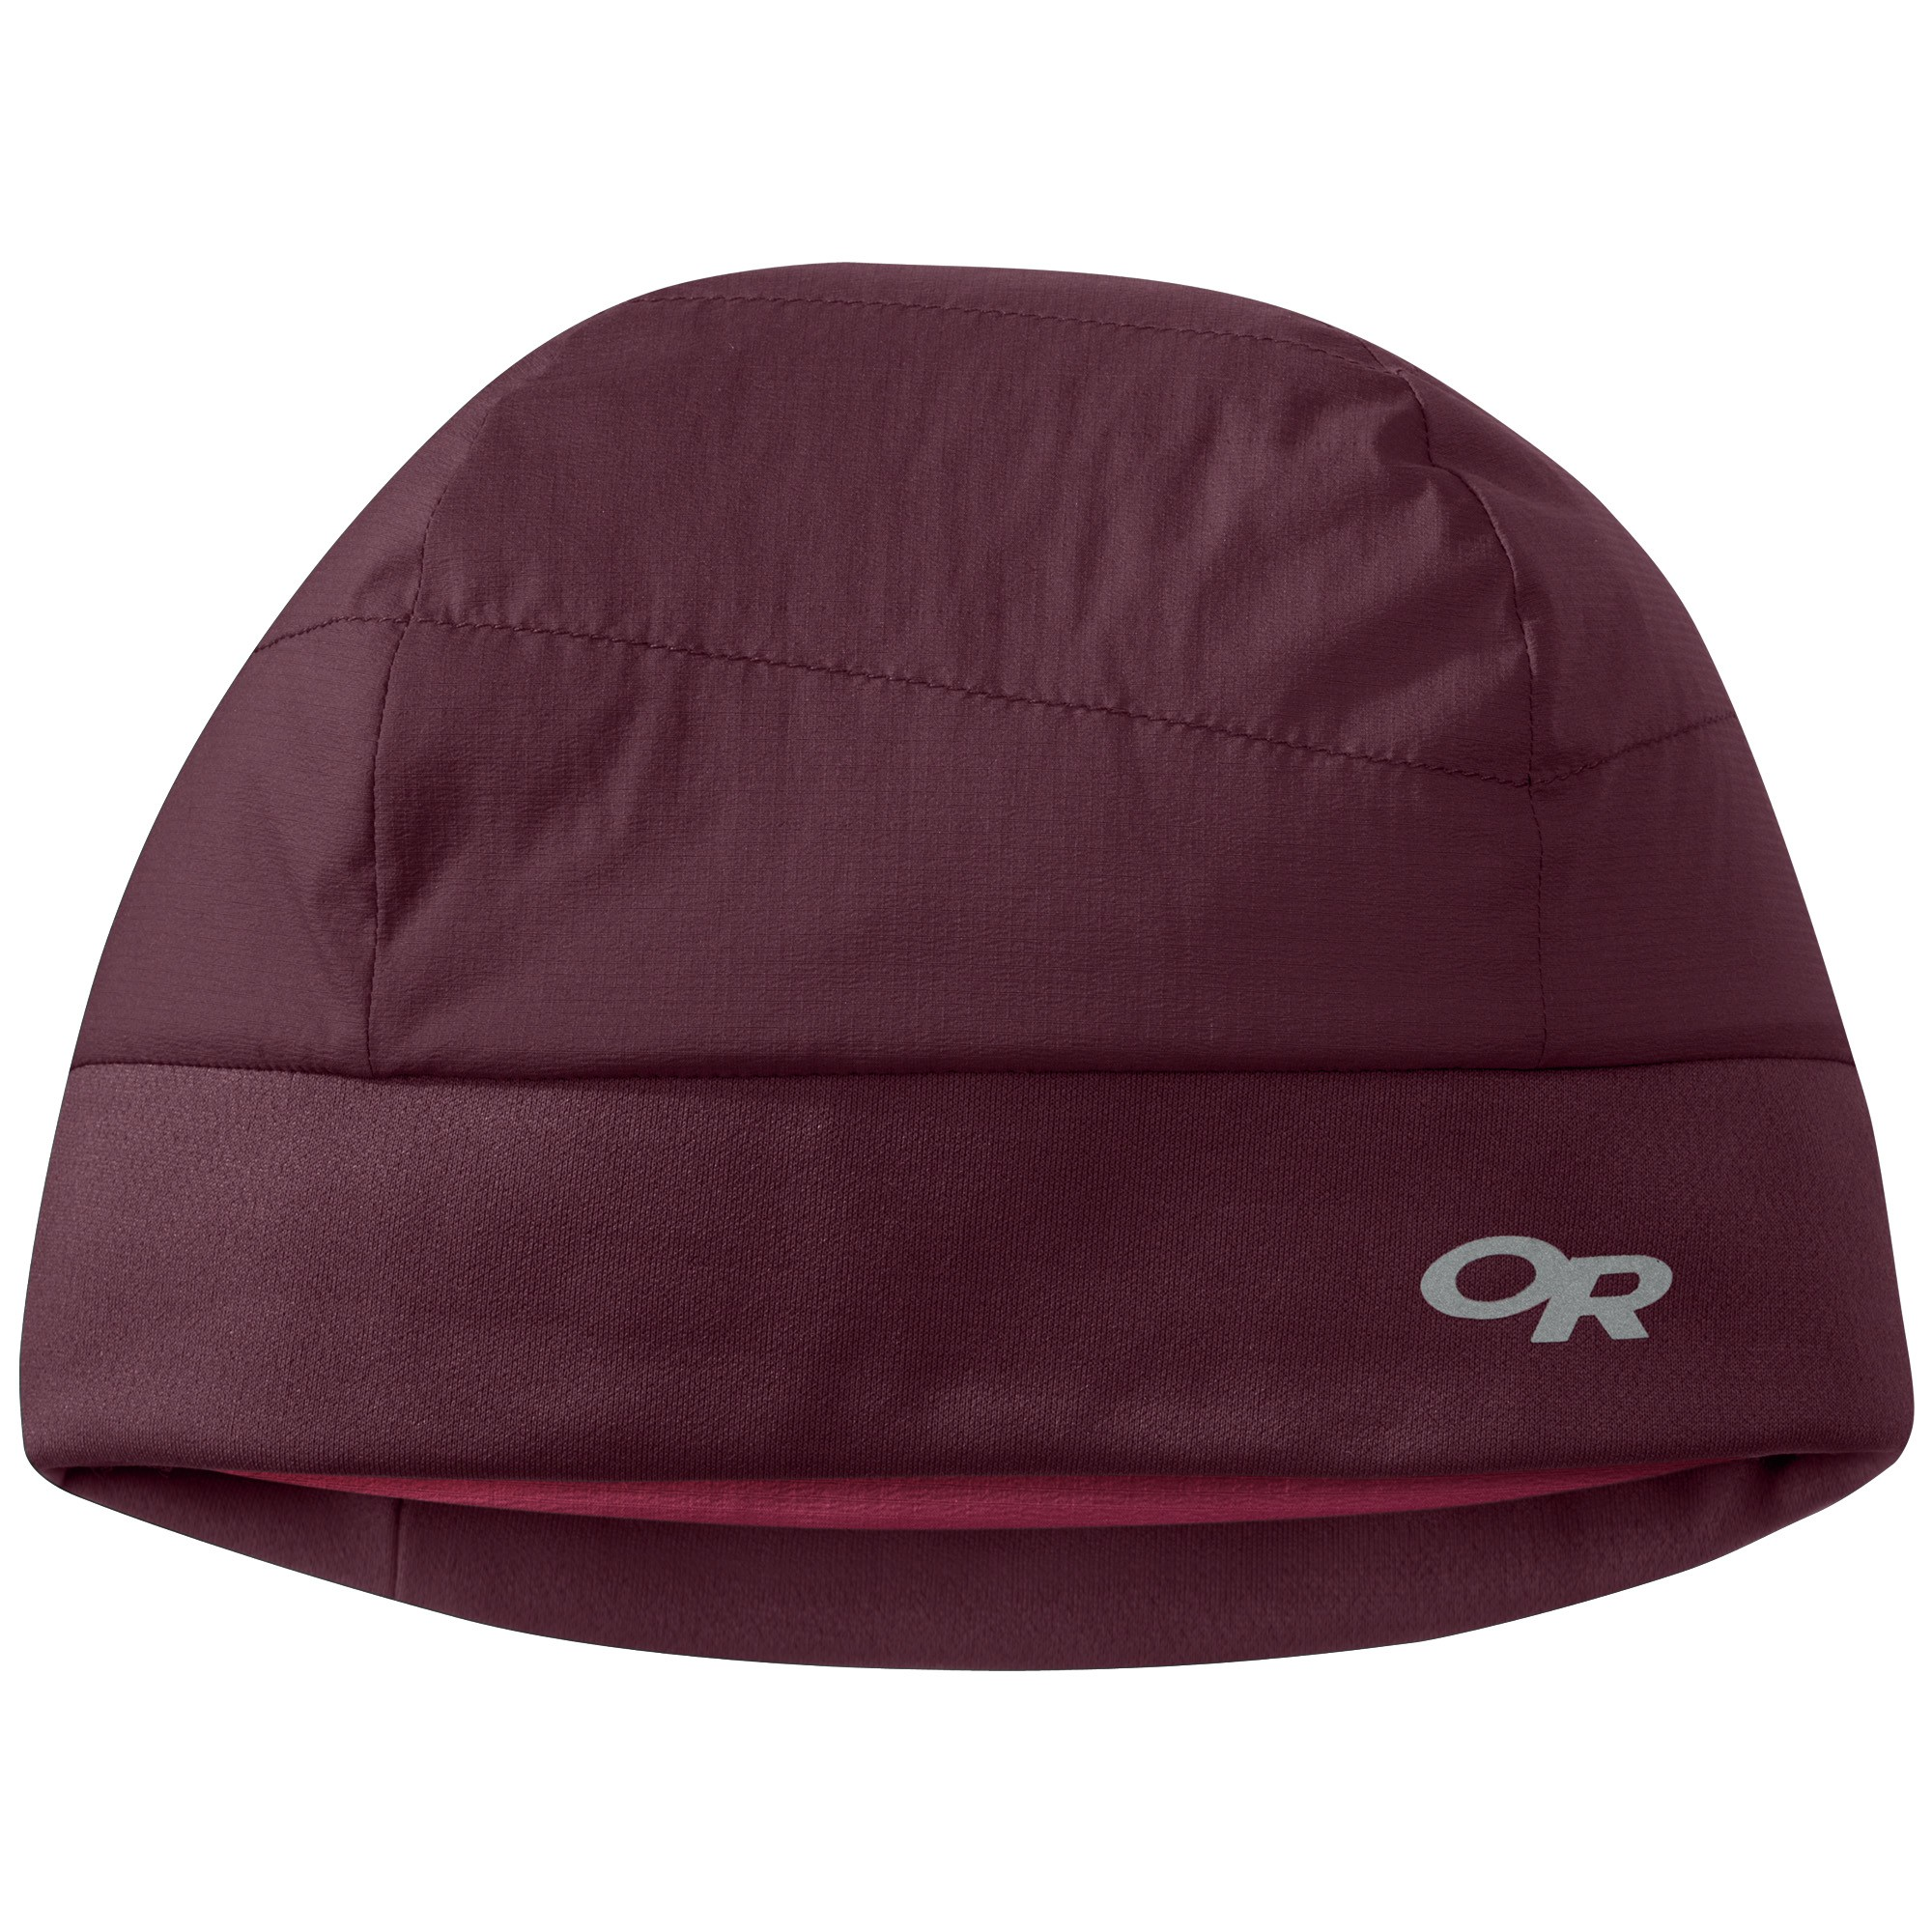 715b46706a8 Details about Outdoor Research OR Ascendant Beanie Pinot Raspberry L XL